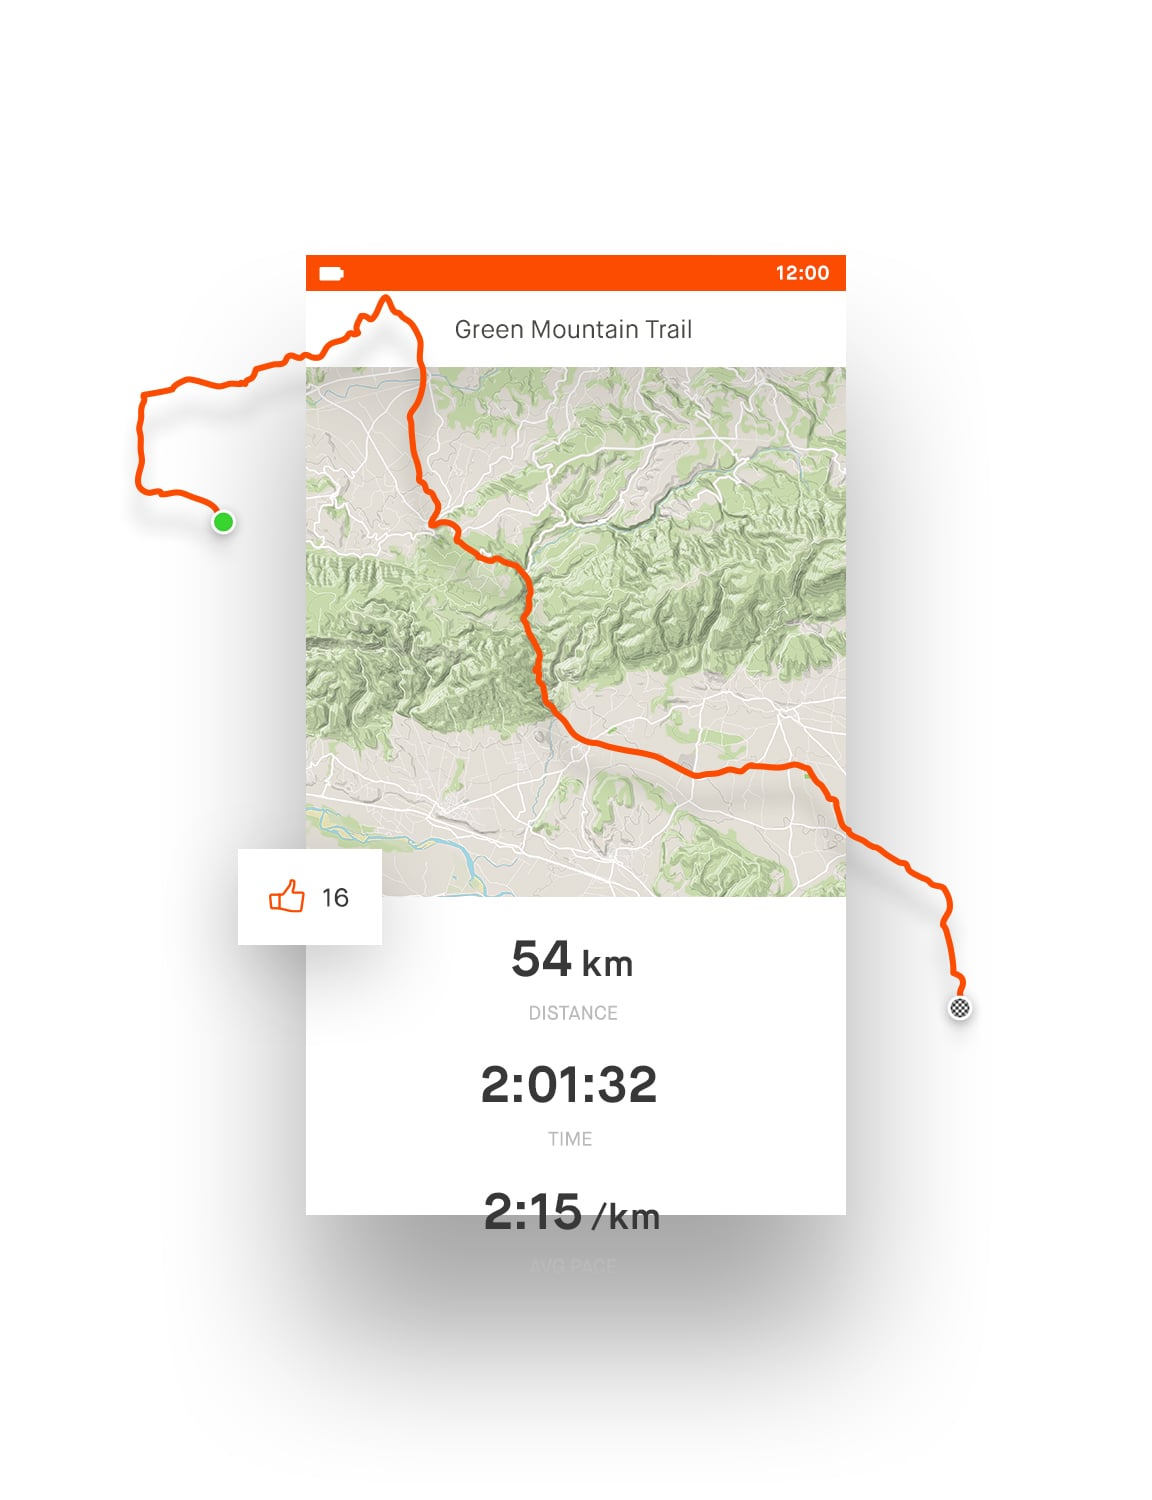 Running Jogging App Strava Run And Cycling Tracking On The Social Network For